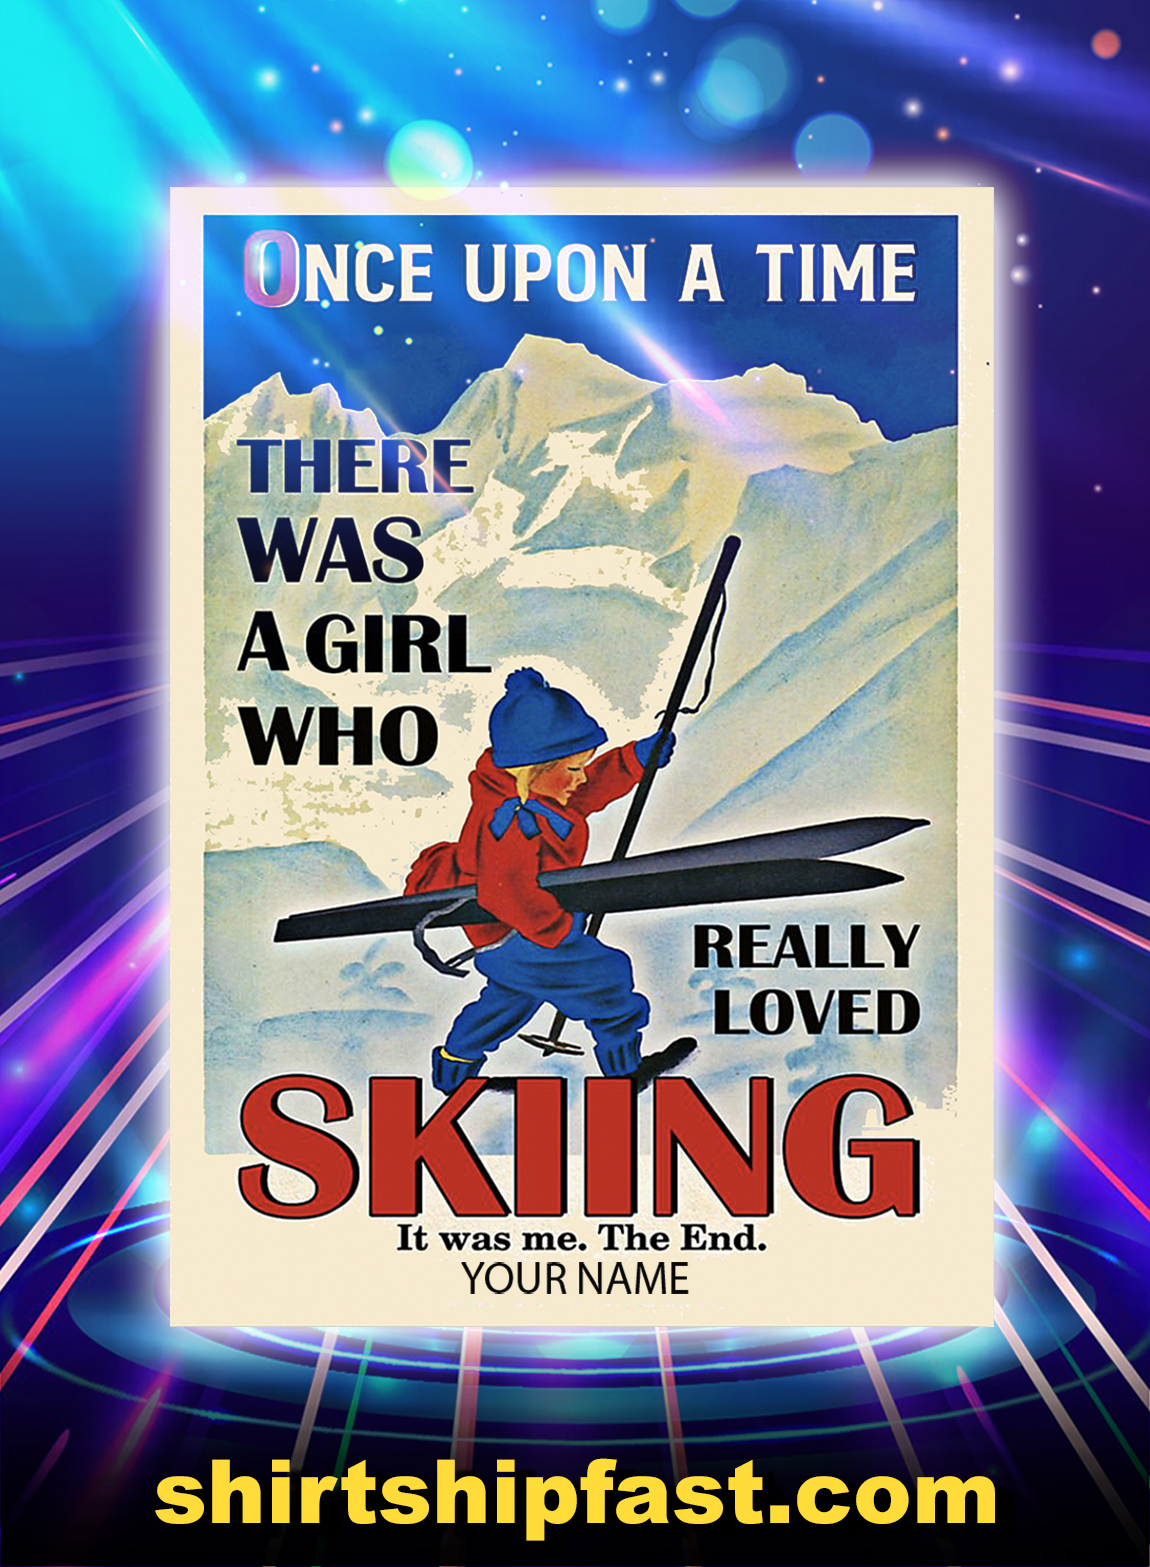 Personalized custom name Once upon a time there was a girl who really loved skiing poster and canvas prints - A2